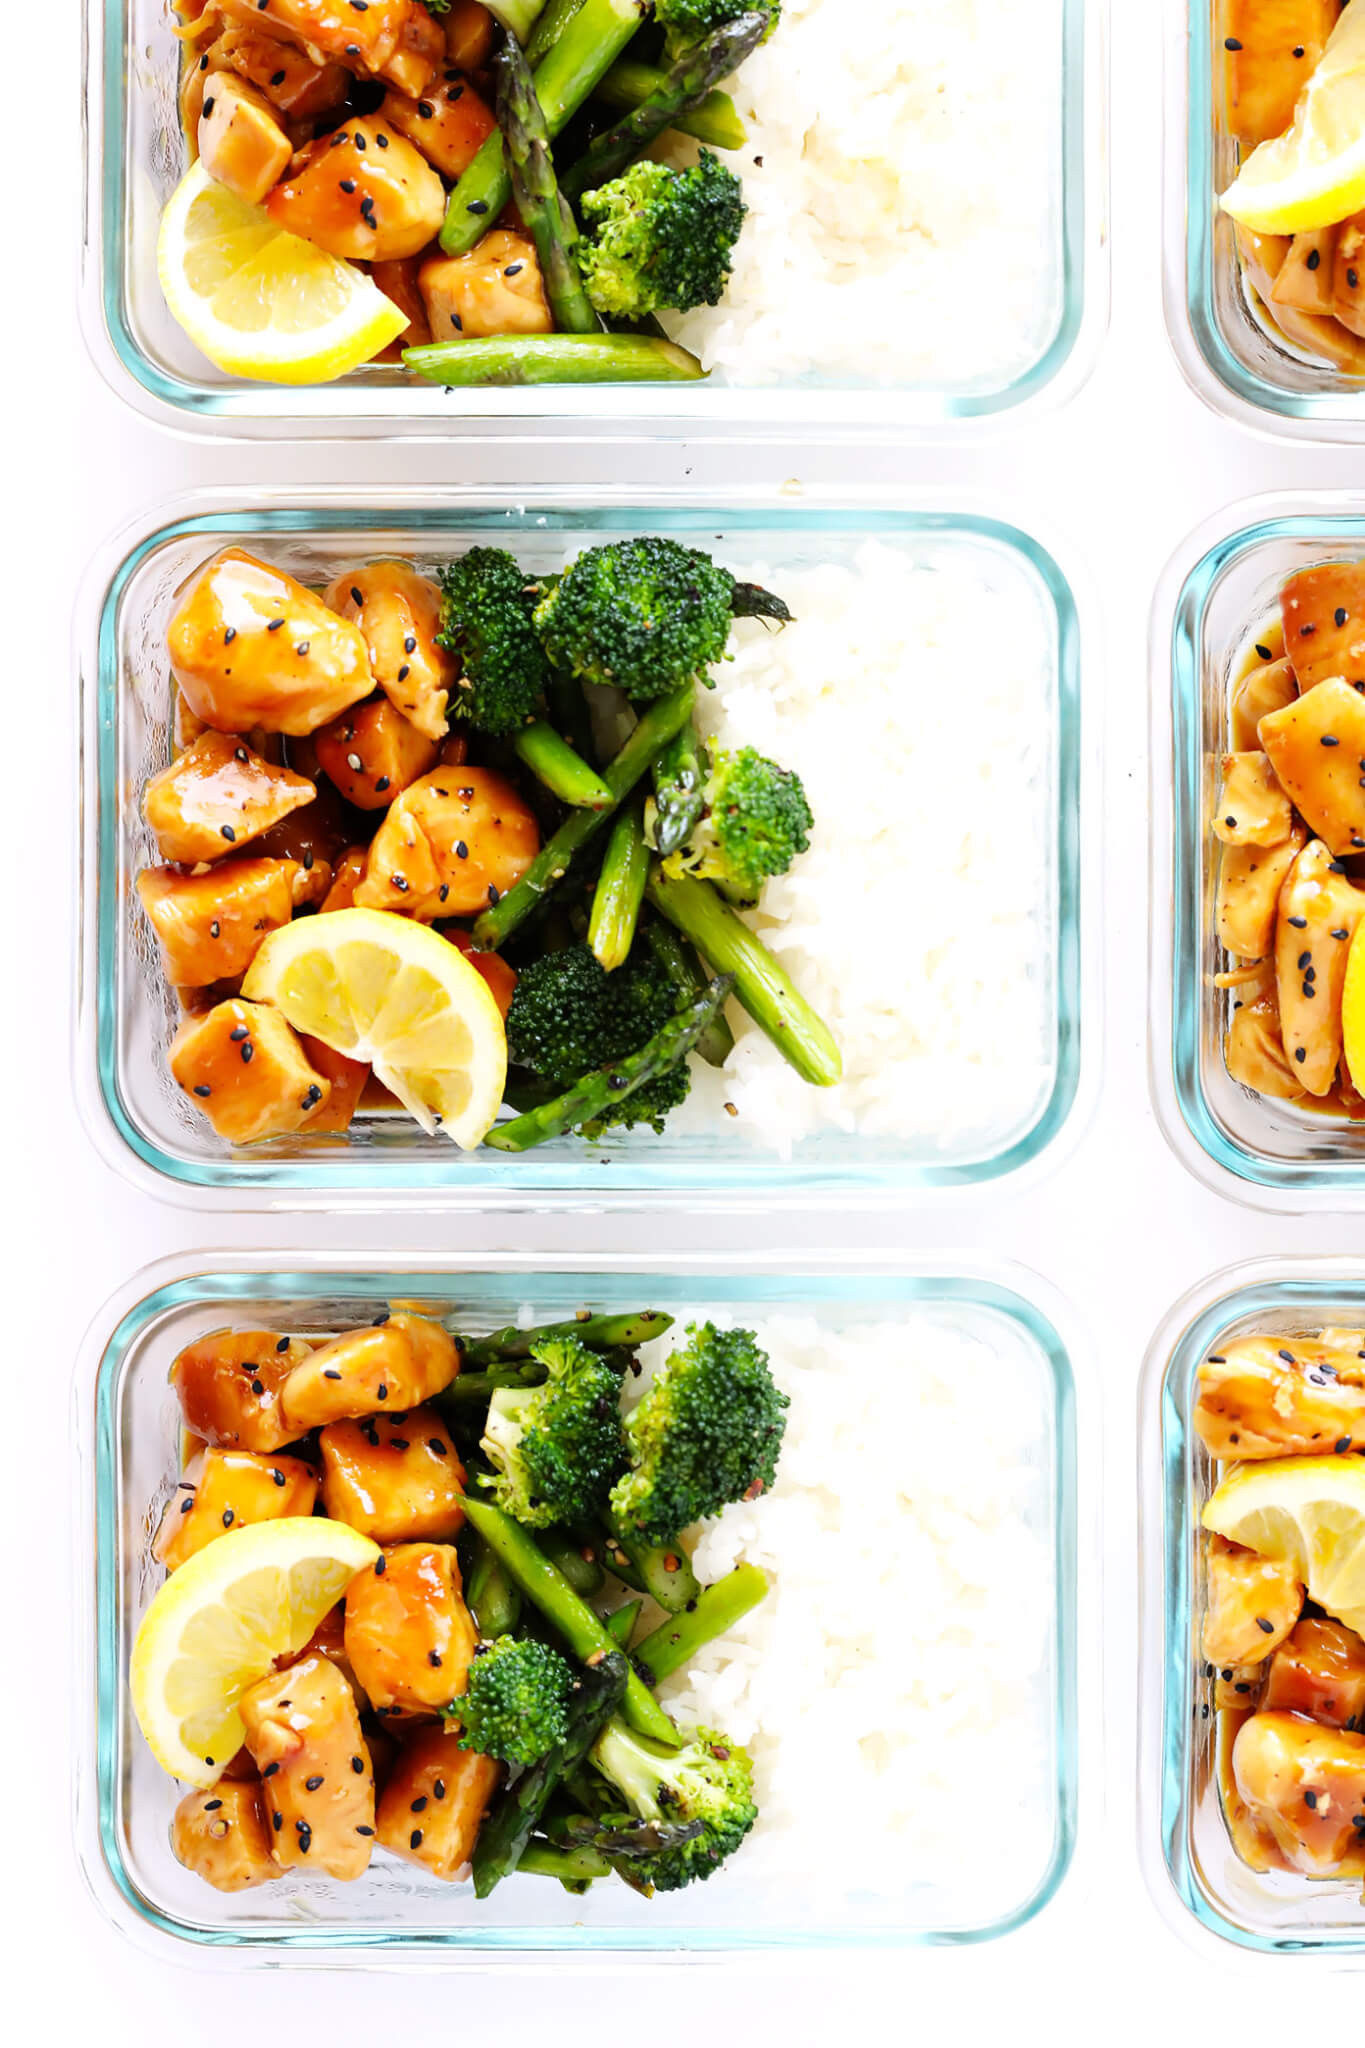 Healthy Meal Prep Lunches  Honey Lemon Chicken Bowls Meal Prep